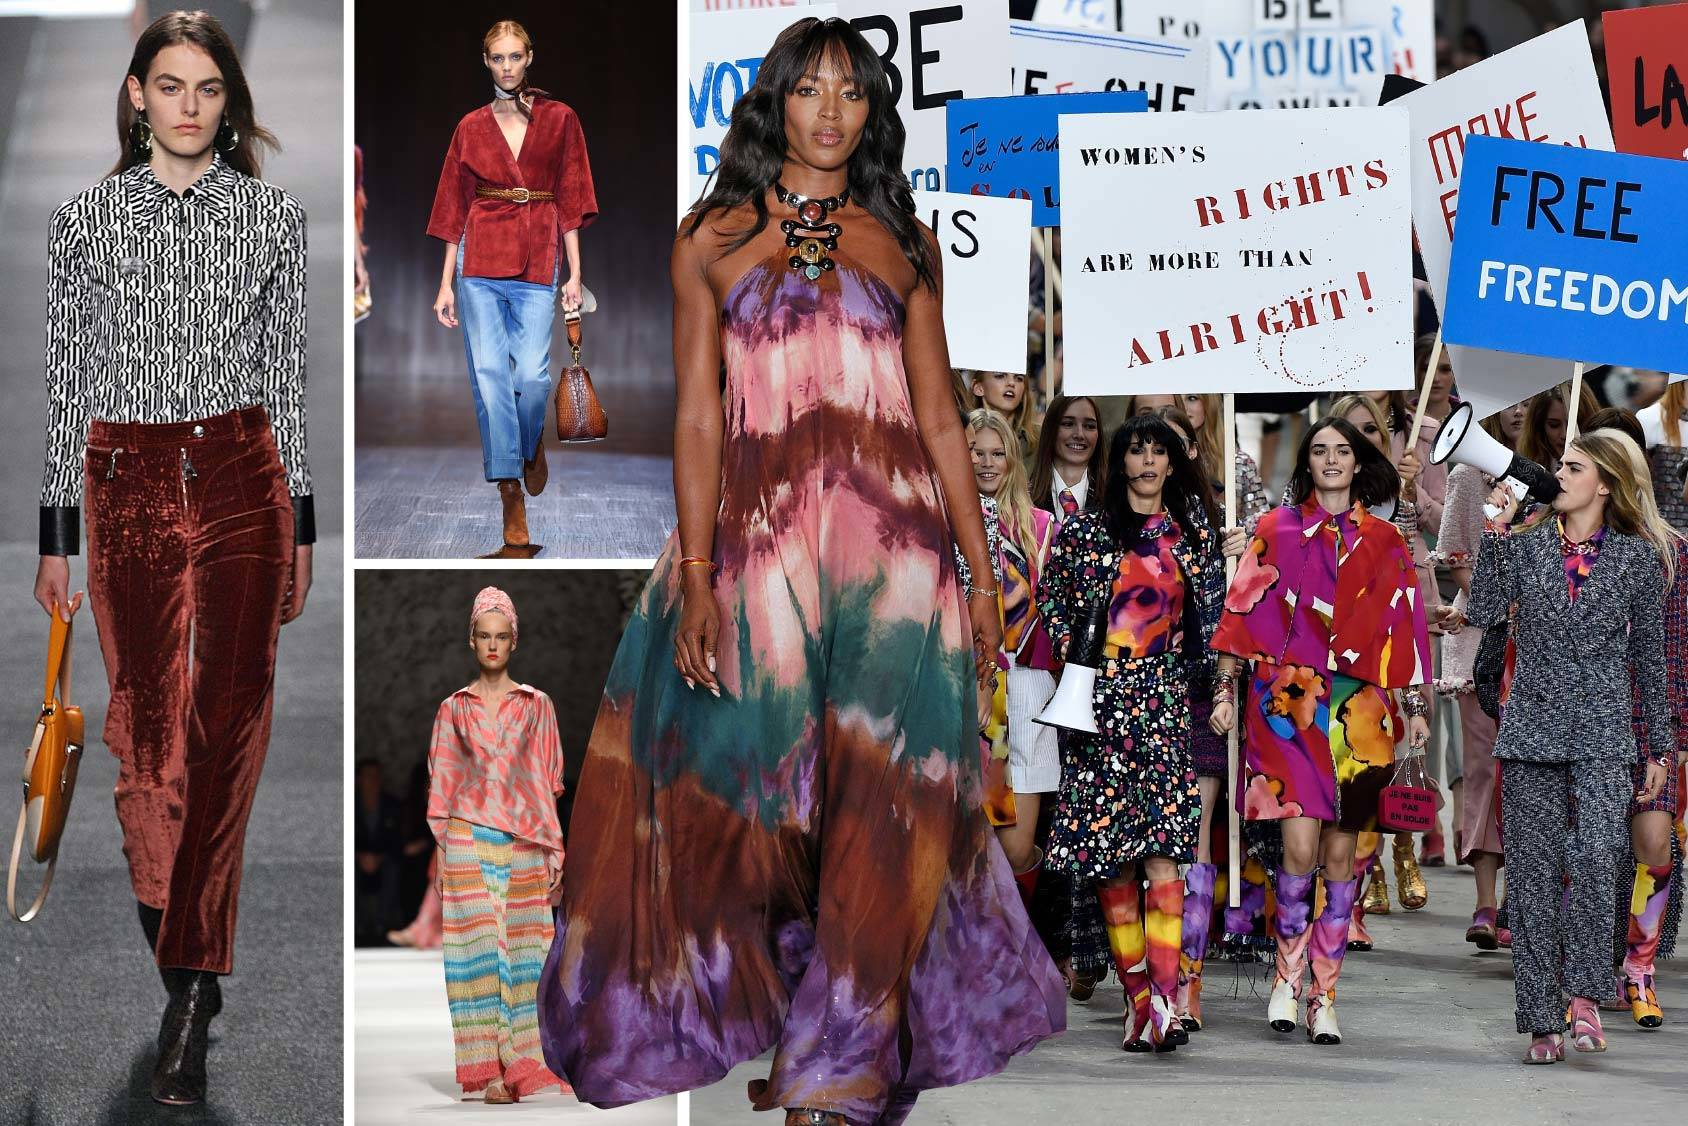 70s inspiration on the runway from Louis Vuitton, Gucci, Missoni, Naomi Campbell at the Emilio Pucci show and Chanel Spring 2015, Getty Images.